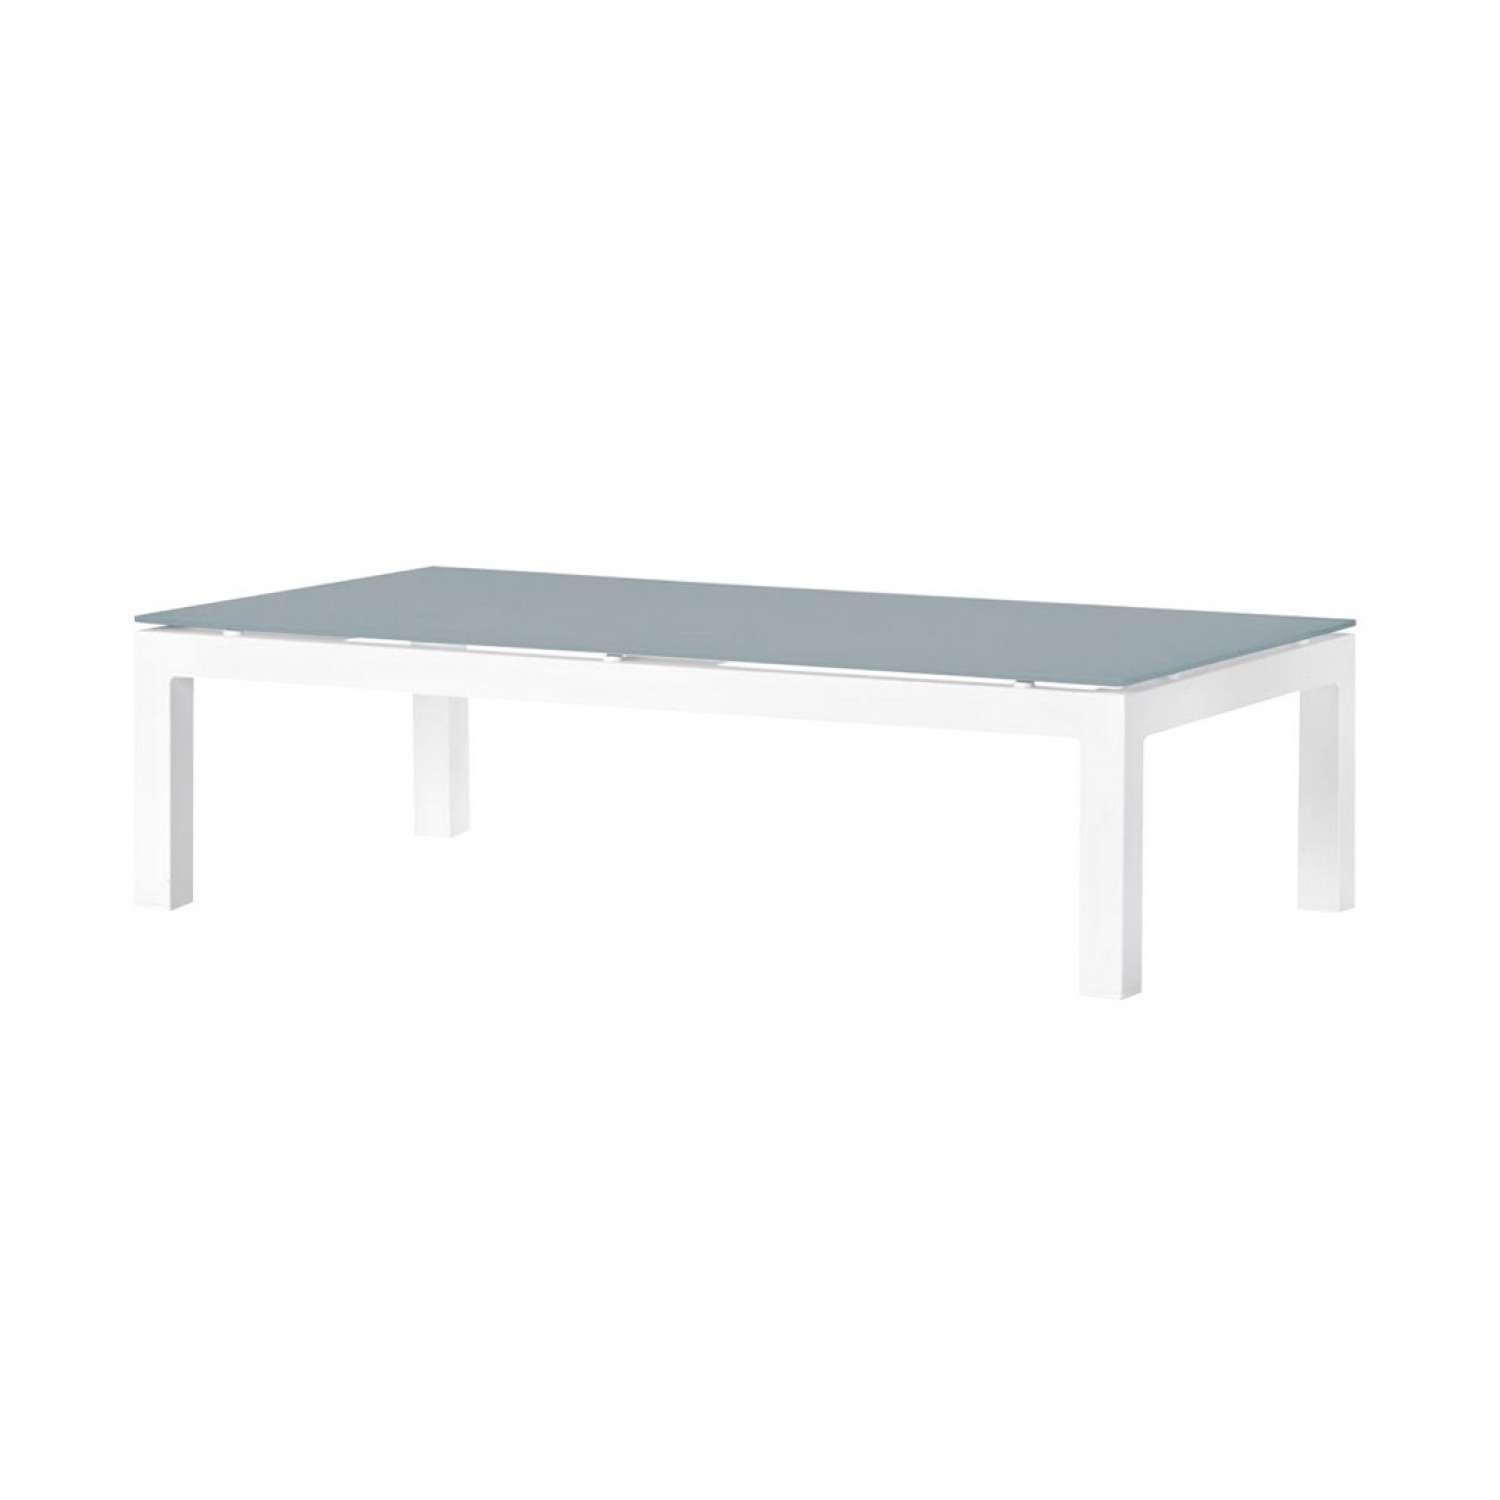 Recent Aluminium Coffee Tables In Venice Aluminium Coffee Table In White With Frosted Grey Glass (View 14 of 20)